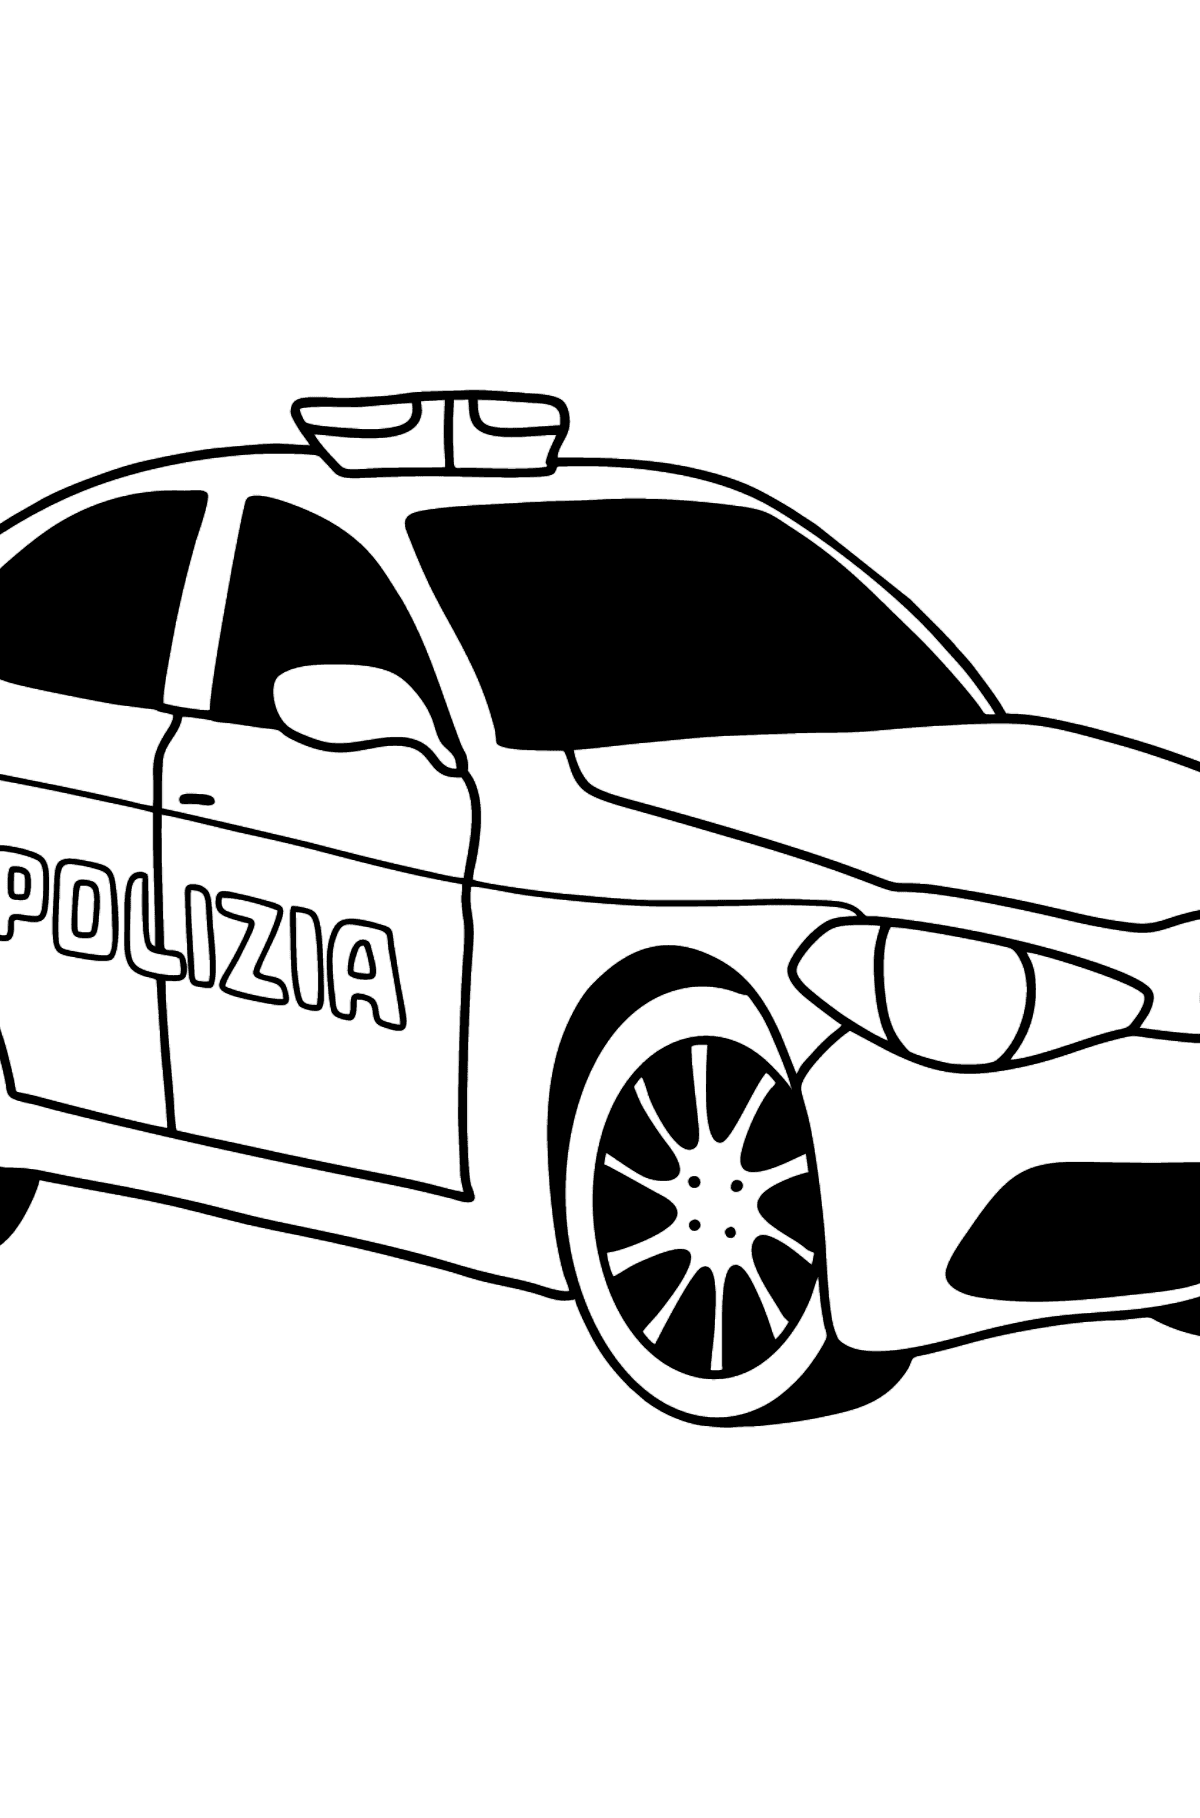 Police Car in Italy coloring page - Coloring Pages for Kids